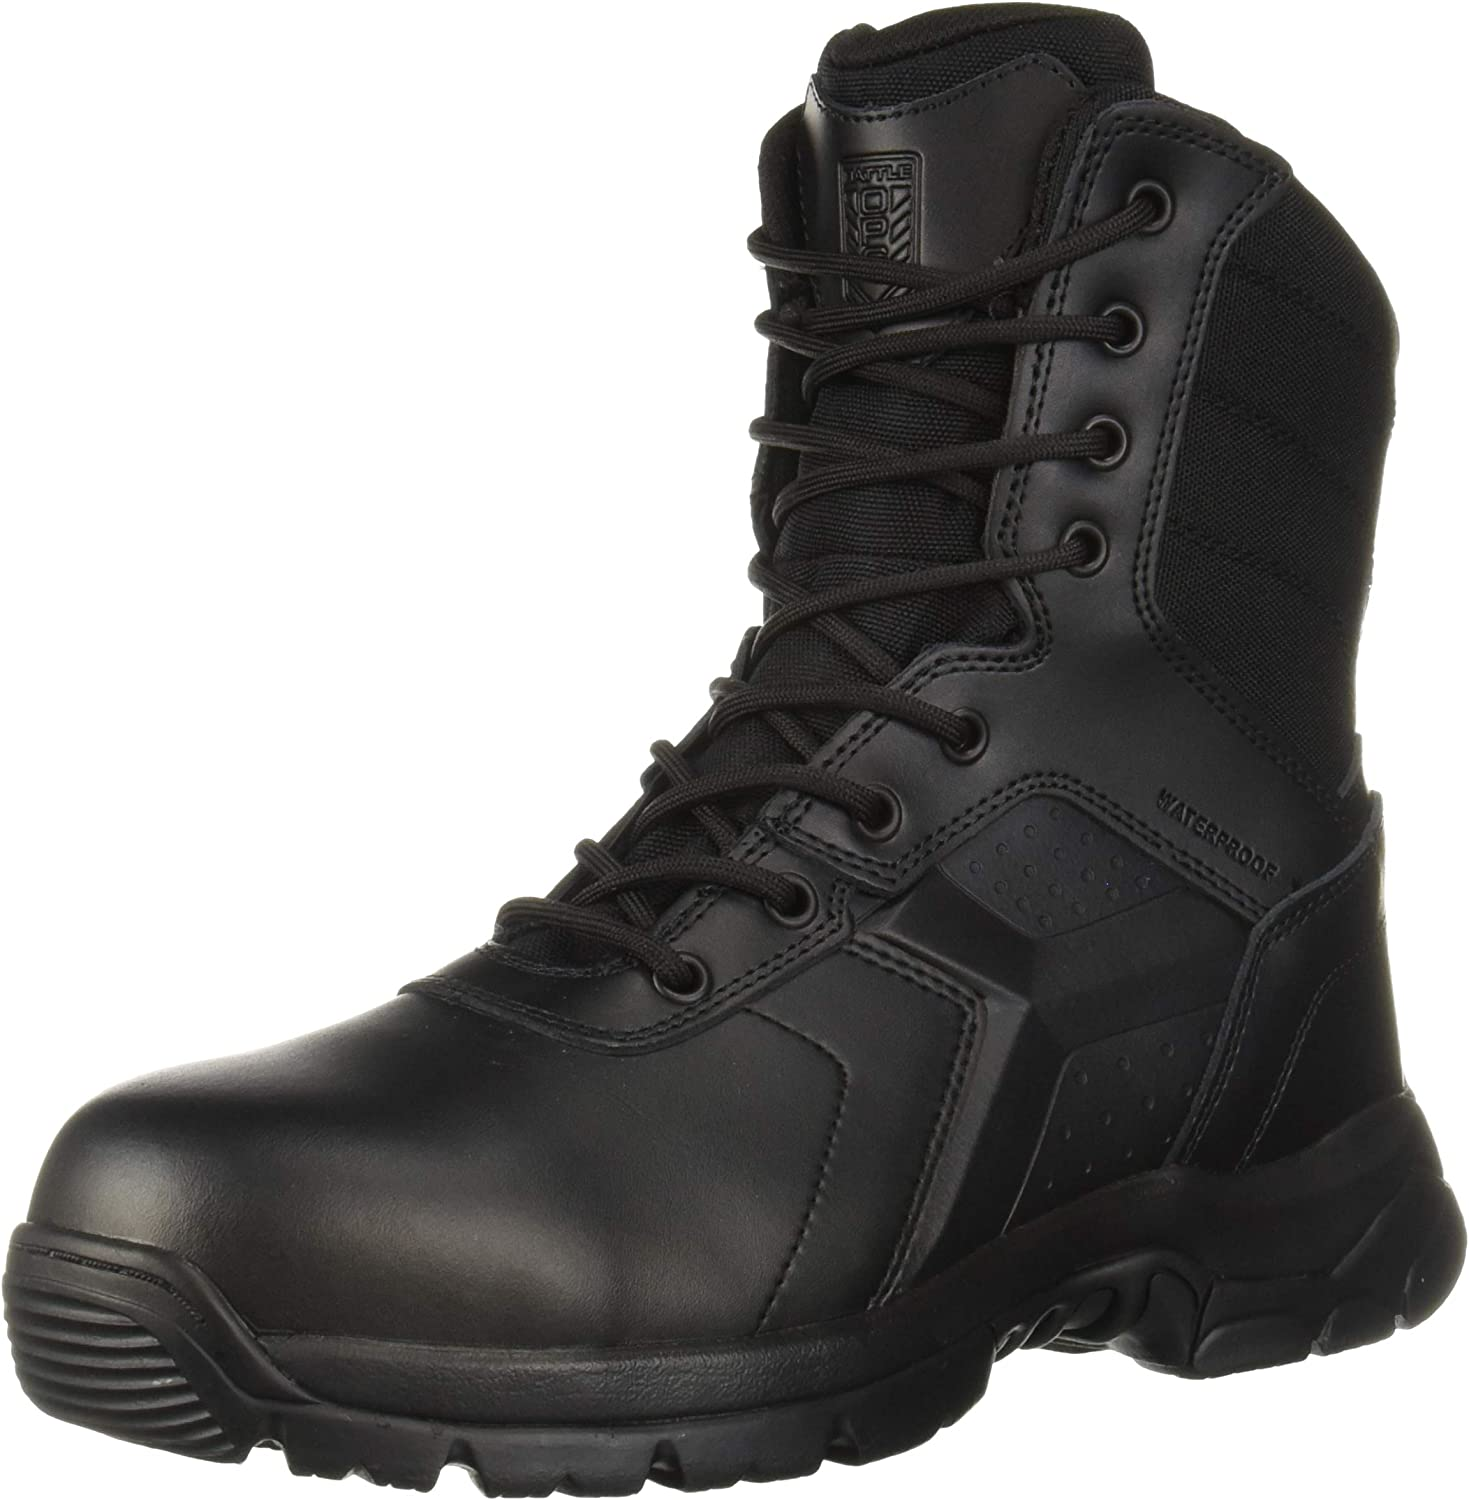 Battle OPS Mens 8-inch Waterproof Side Zip Tactical Boot Comp Safety Toe Military and Tactical Boot